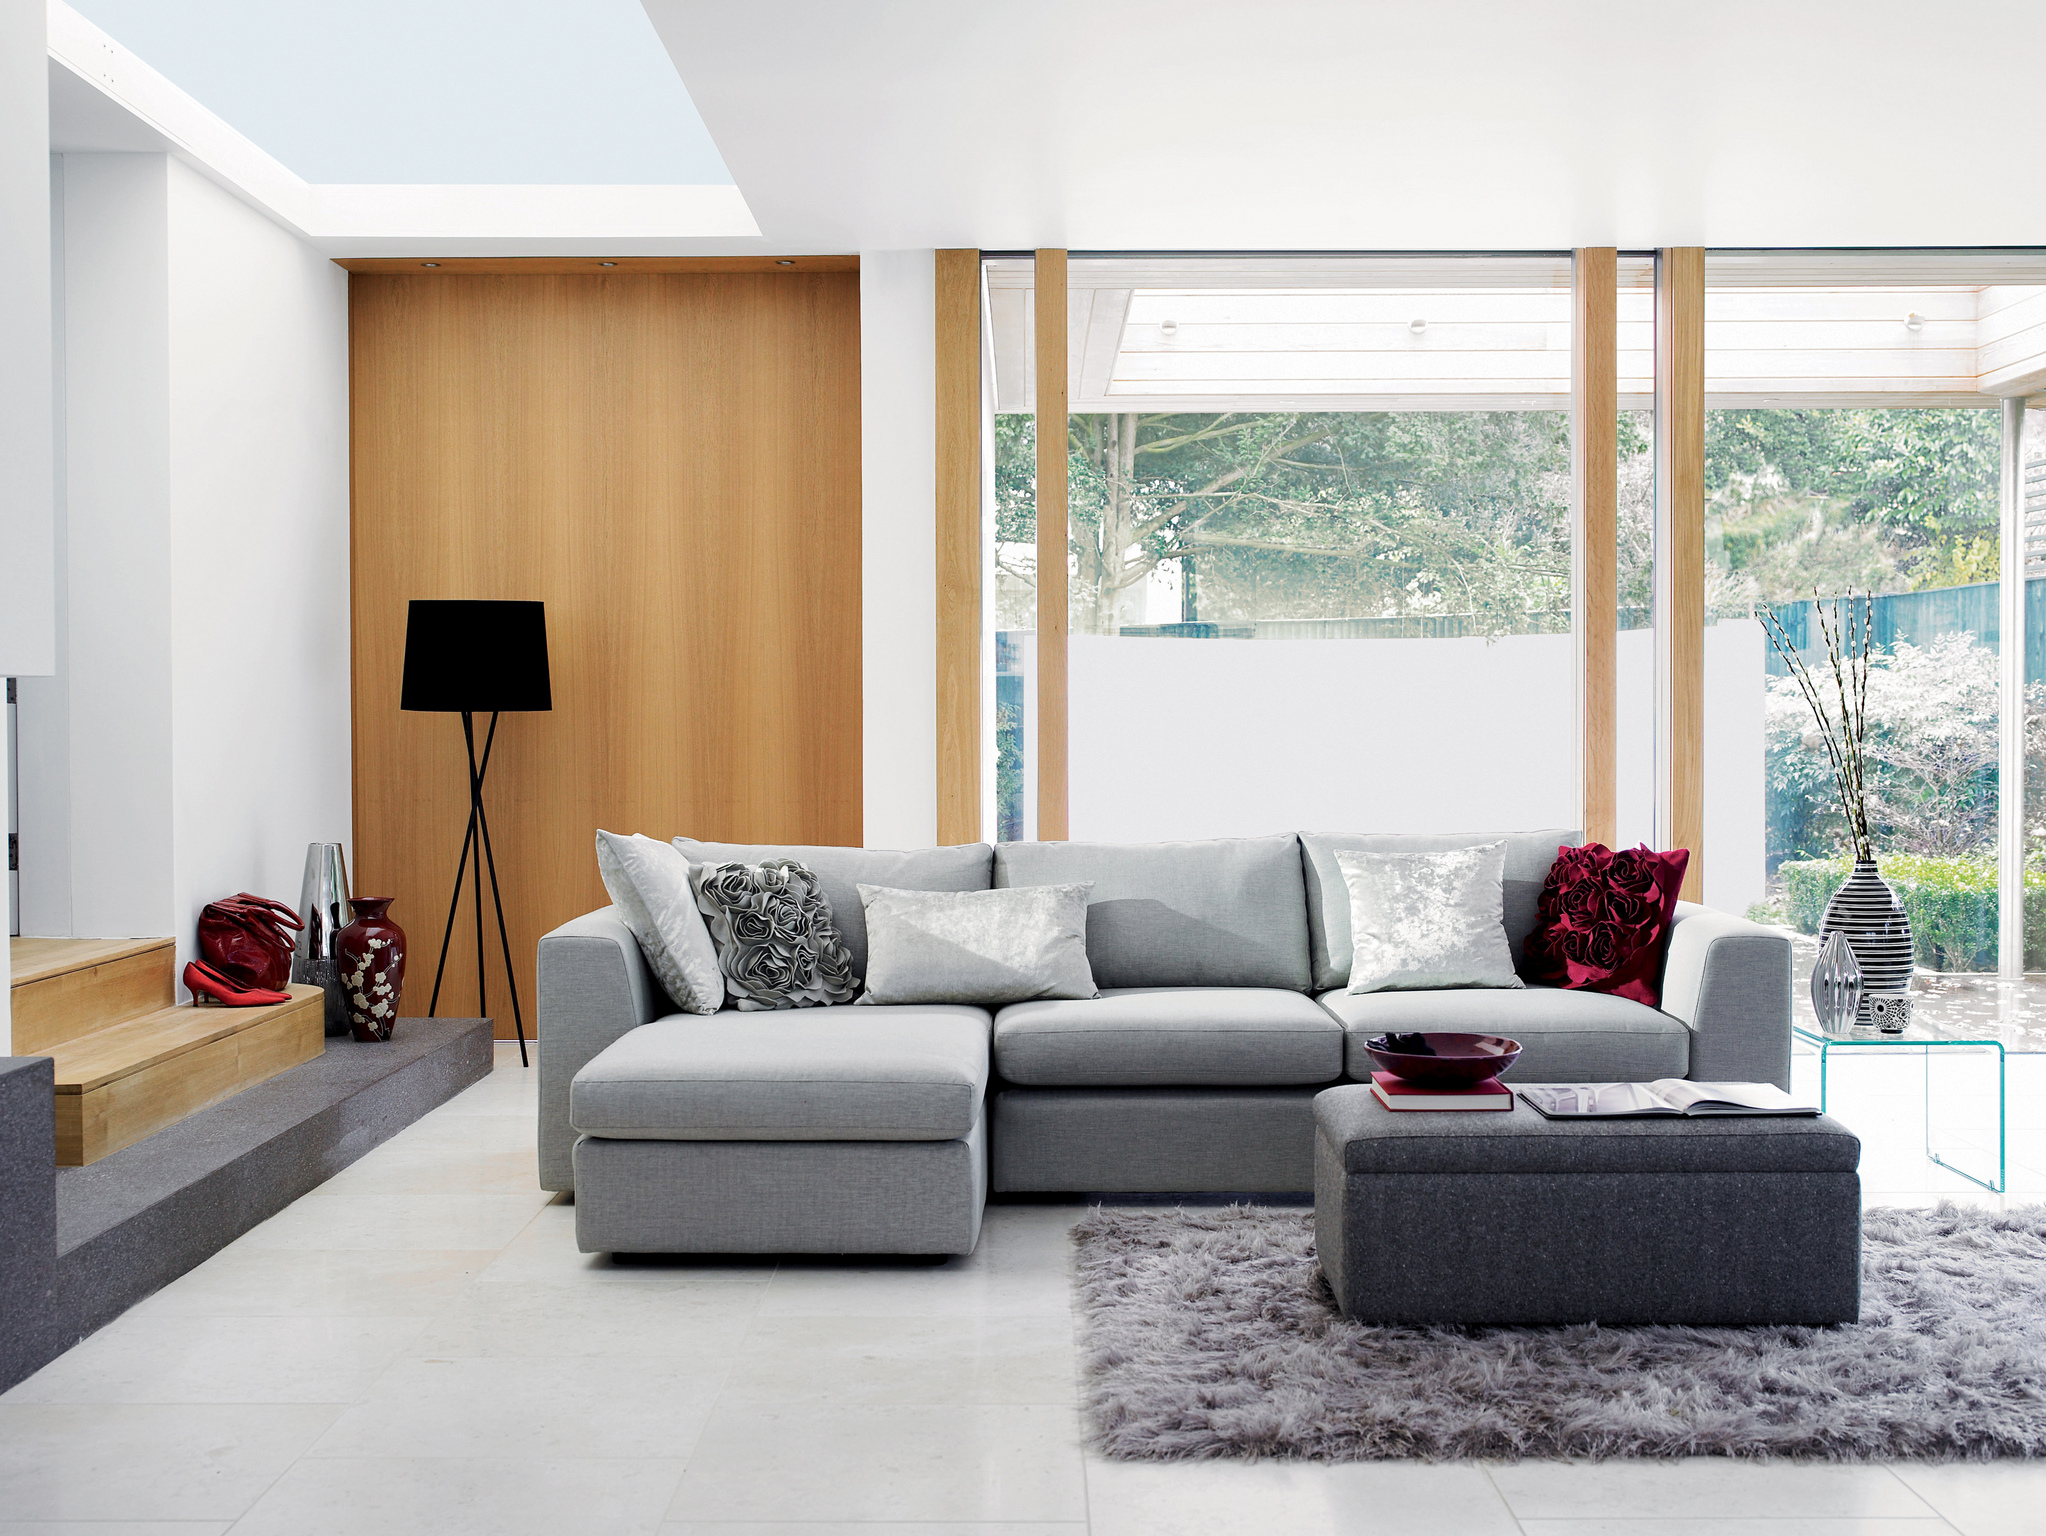 Old Living Room Designs Living Room Designs To Inspire You Decoholic Slate Living Room Ideas Sofa Living Room Ideas houzz-02 Gray Living Room Ideas